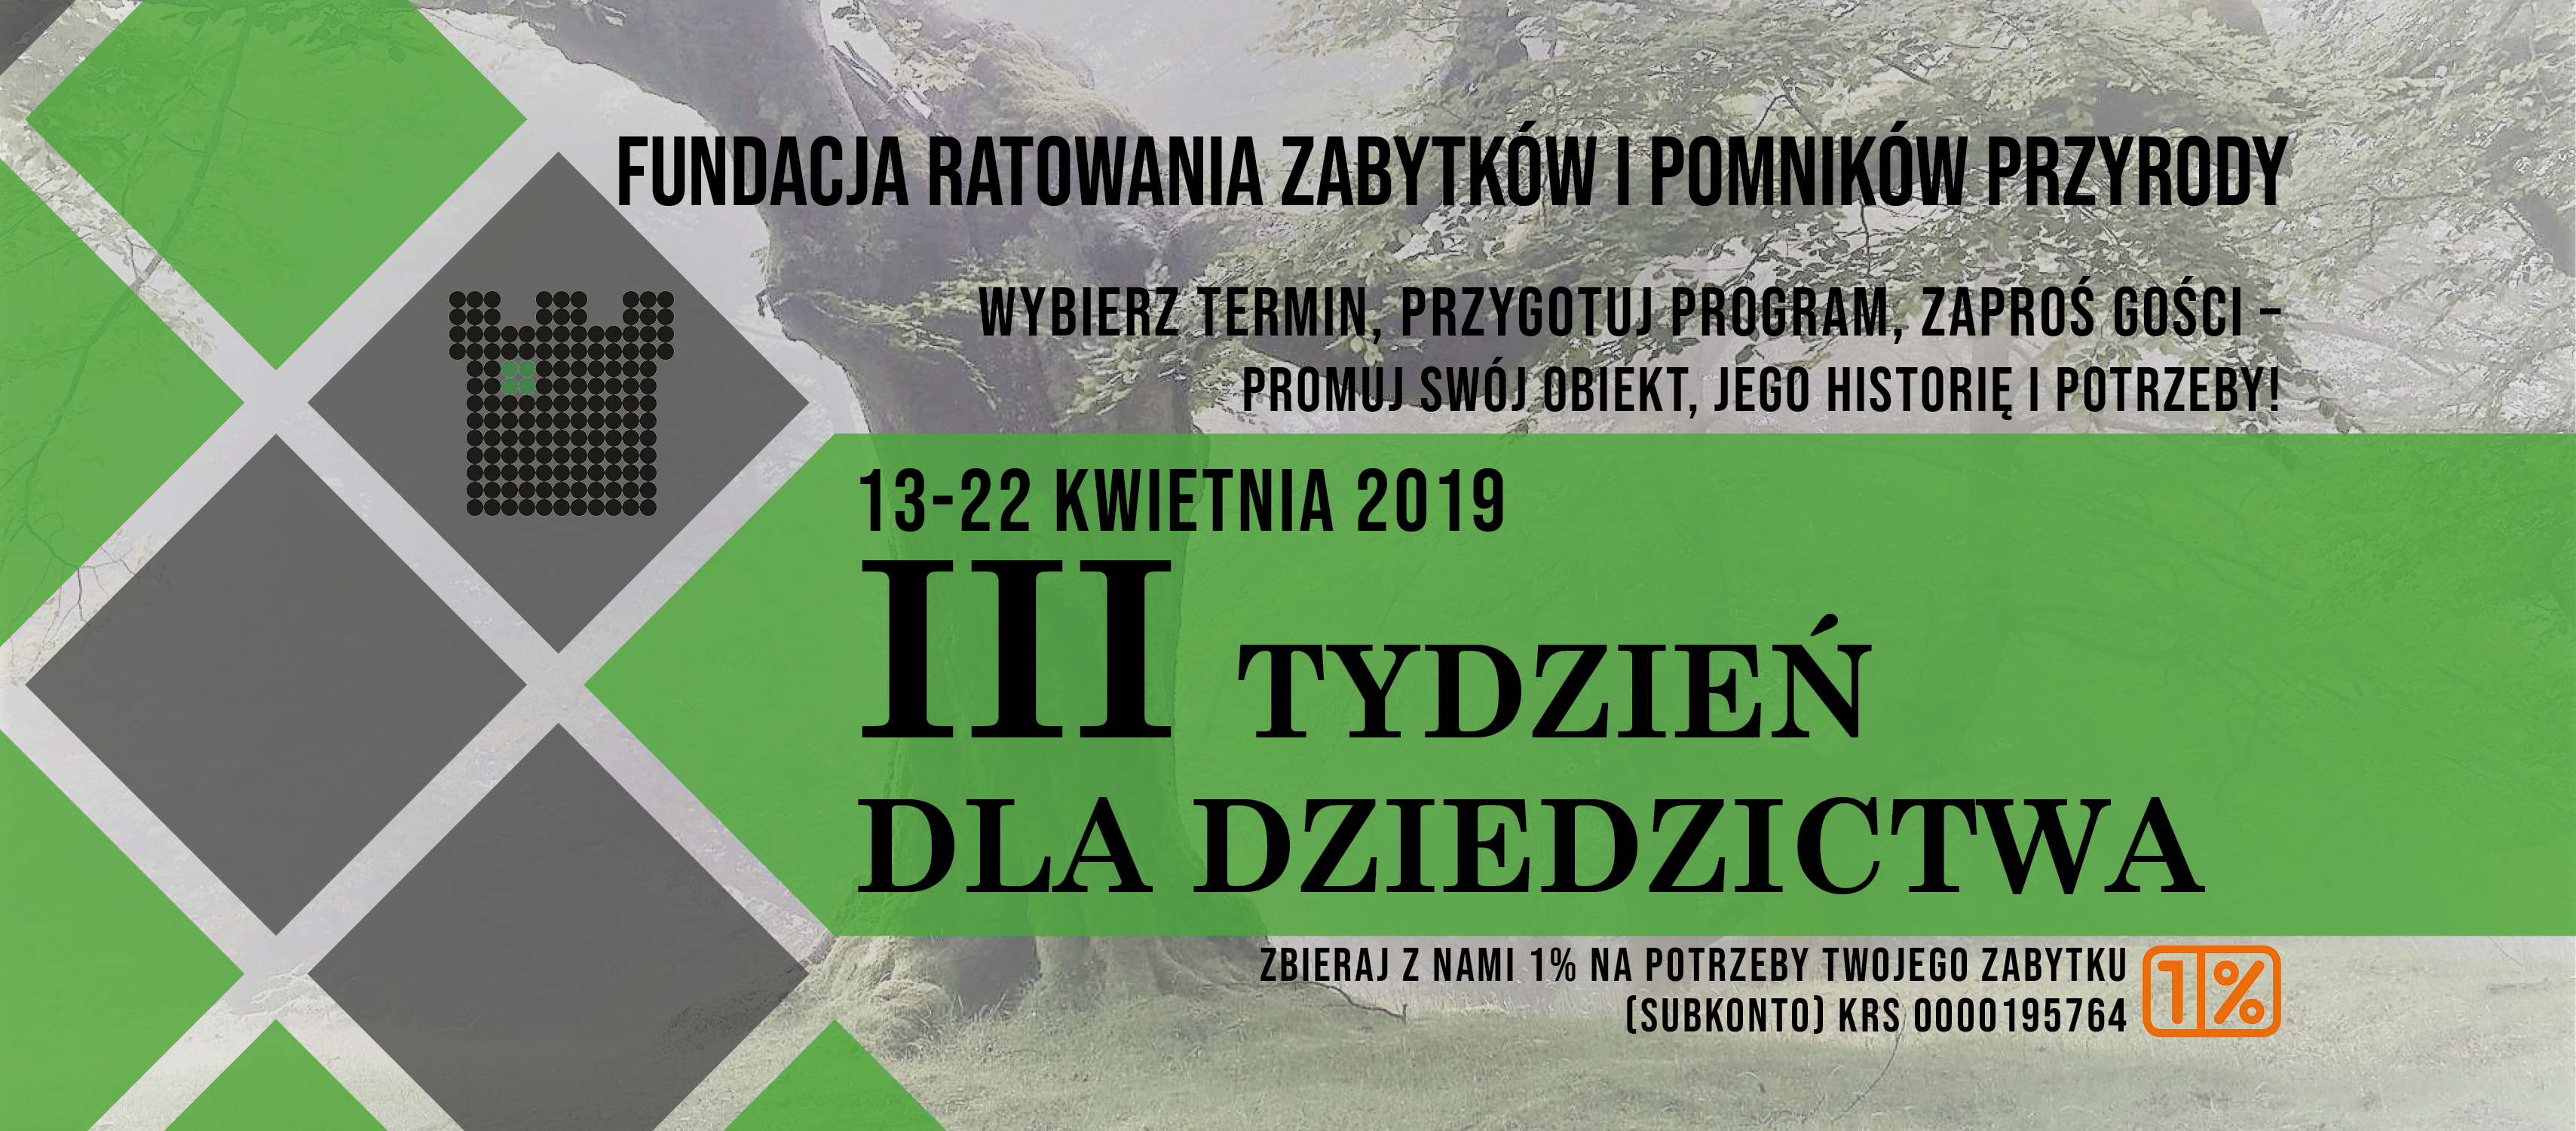 Iveta Sunshaded international day for monuments and sites - 18 april 2019